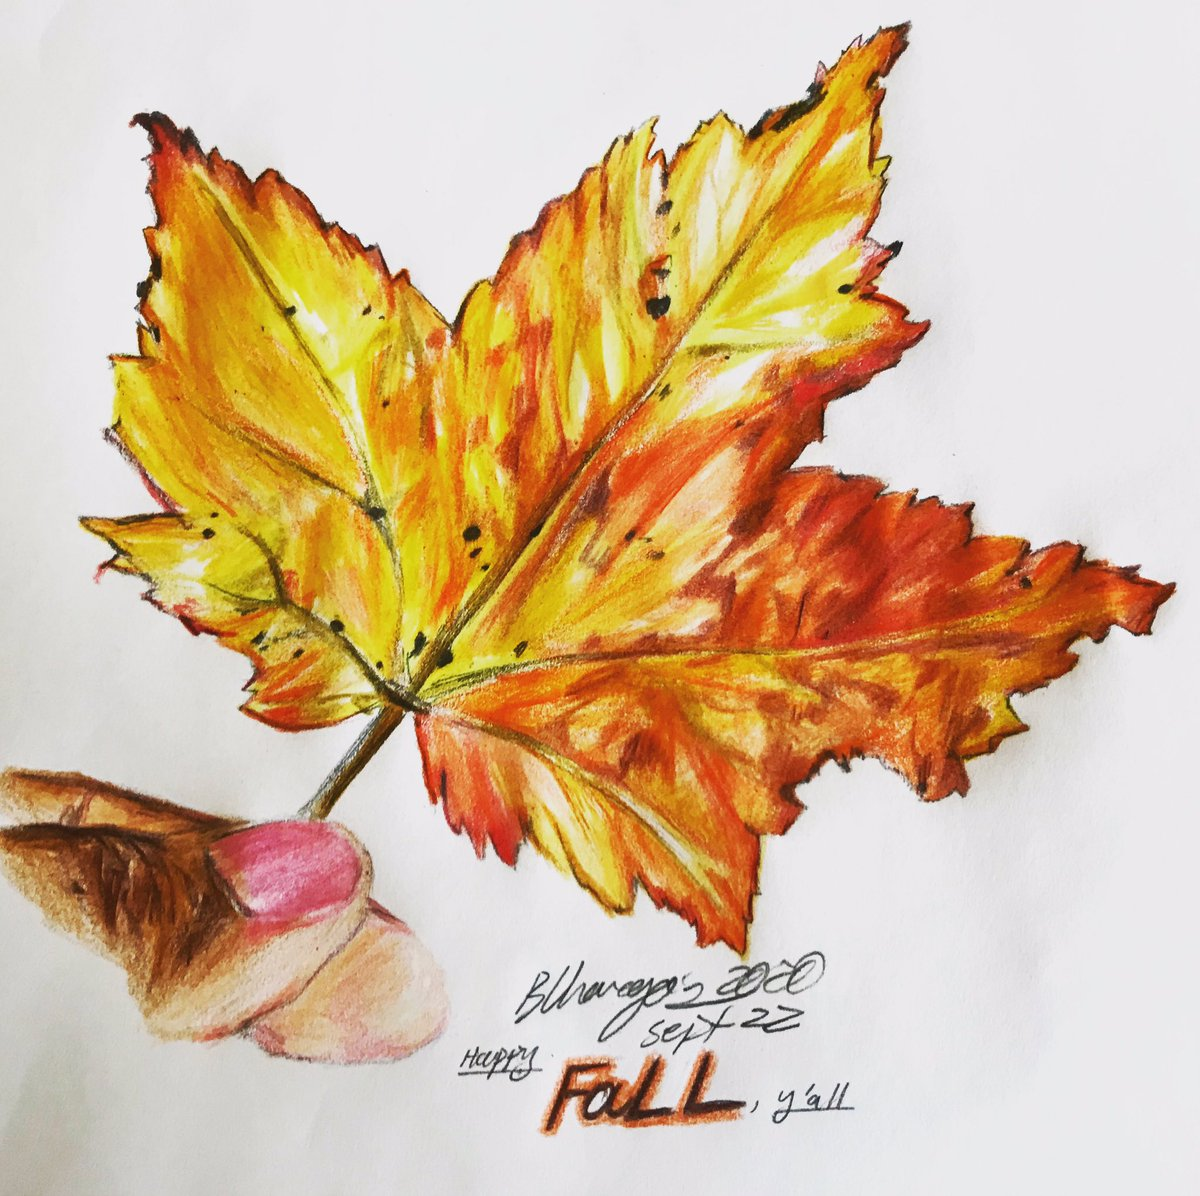 The drawing says it all! 🥰 I'm so happy that it's #fall 🍁, y'all!   #Fall2020 #FallEquinox #AutumnEquinox #Autumn2020 #Autumn #fallleaf #autumnleaf #leaf #colorpencils #coloredpencils #drawing #sketch #Pencildrawing #pencilsketch https://t.co/EA1R5tAzaD